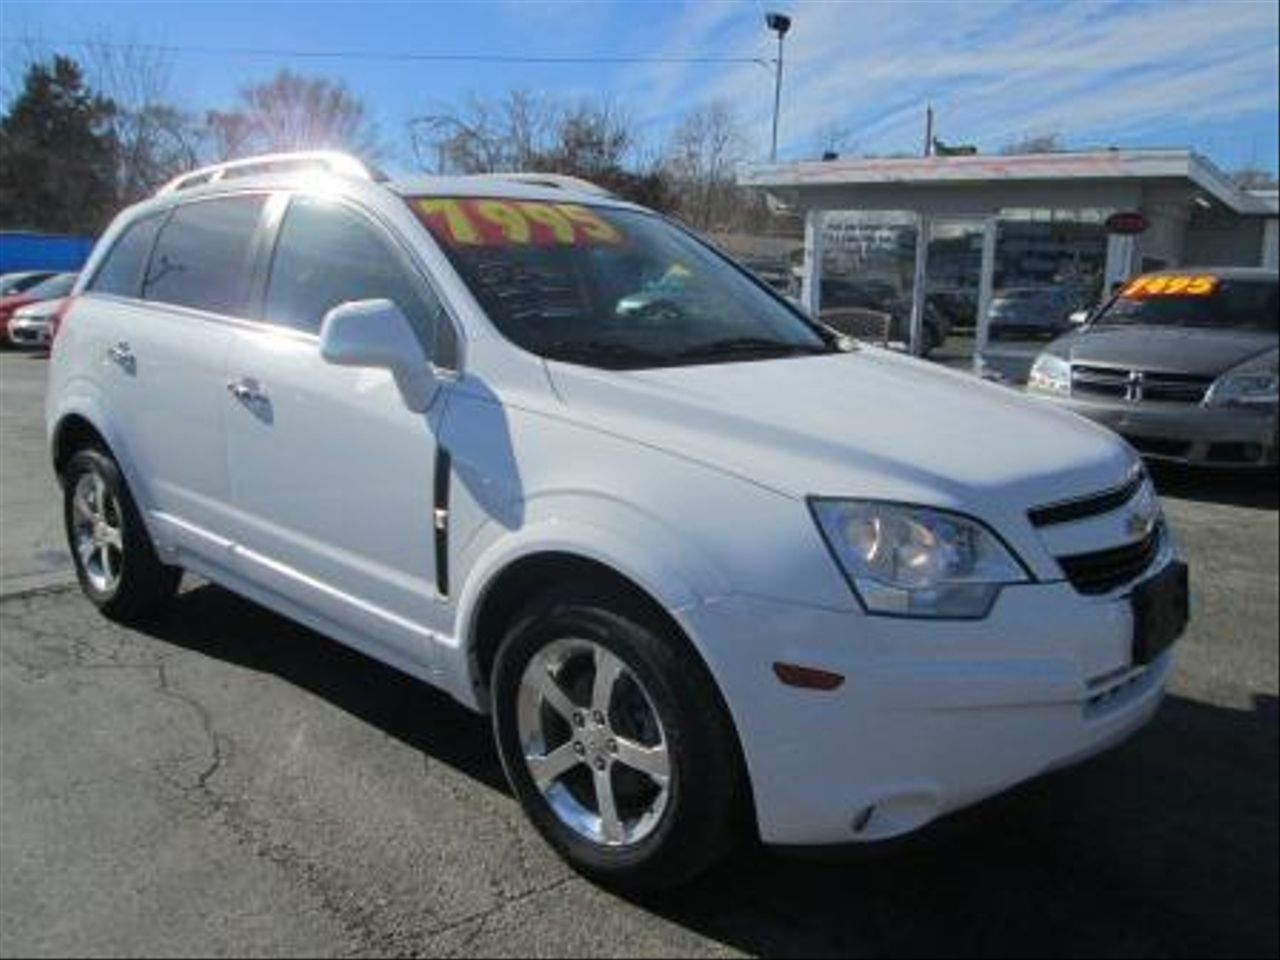 All Chevy chevy captiva gas mileage : MJS Car Sales - 2013 CHEVROLET CAPTIVA SPORT